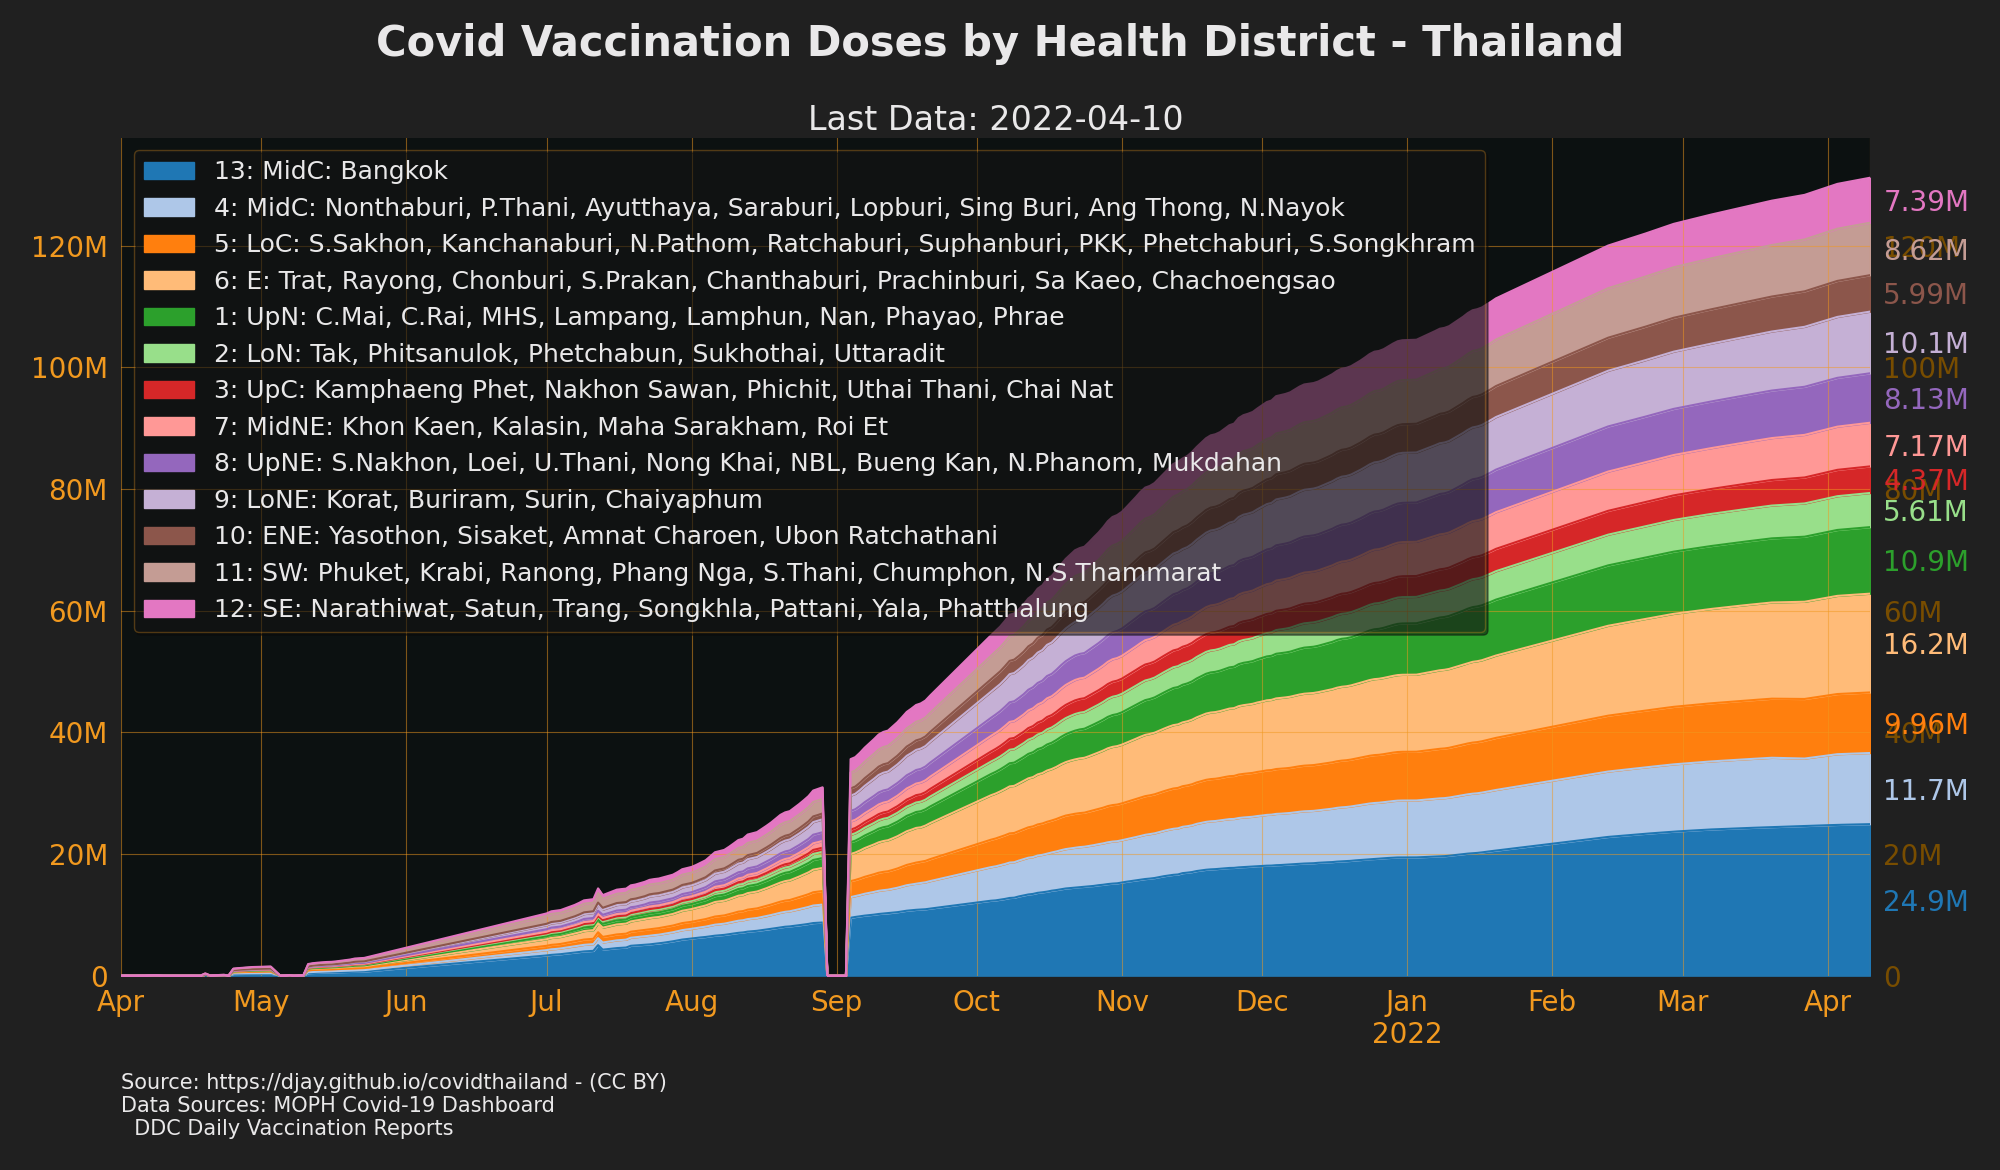 Vaccine Doses given by Heath District